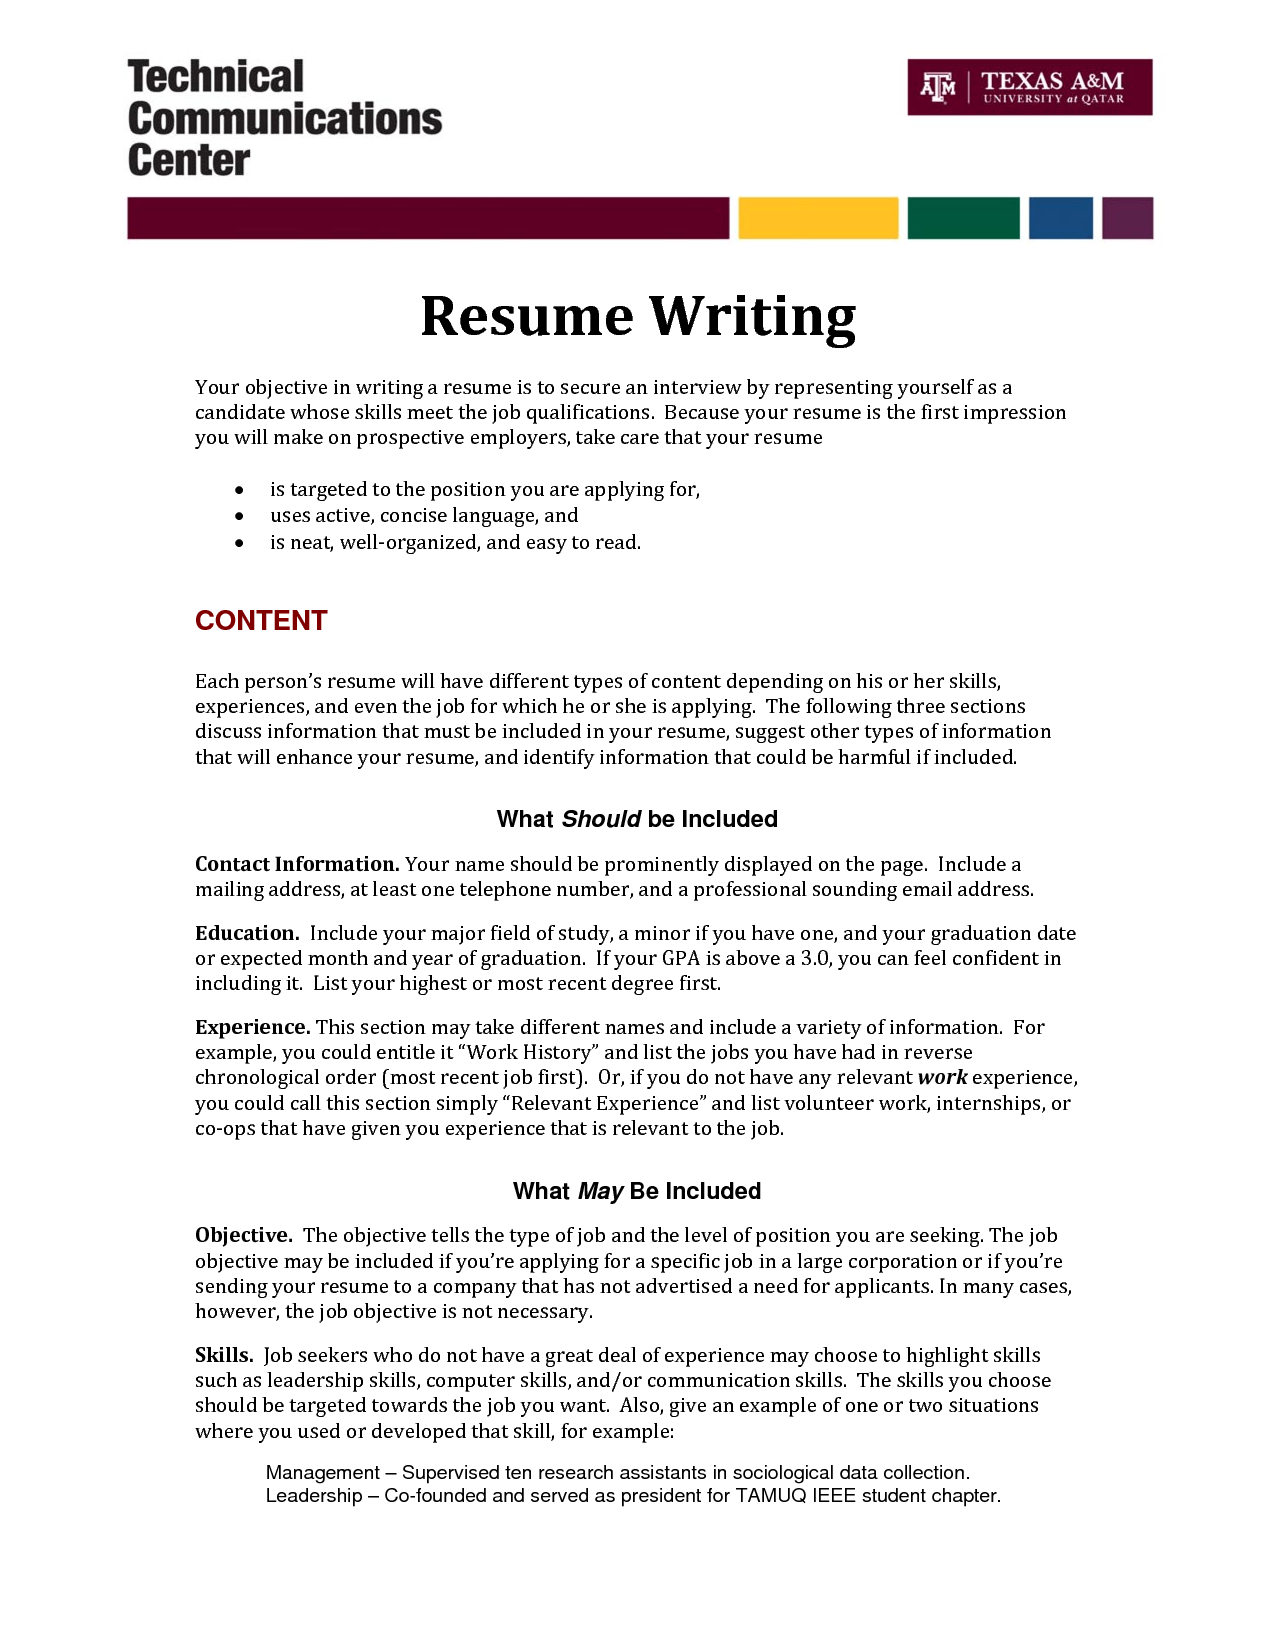 PowerPoint 2010: Amazon.ca: Software degree information on resume ...